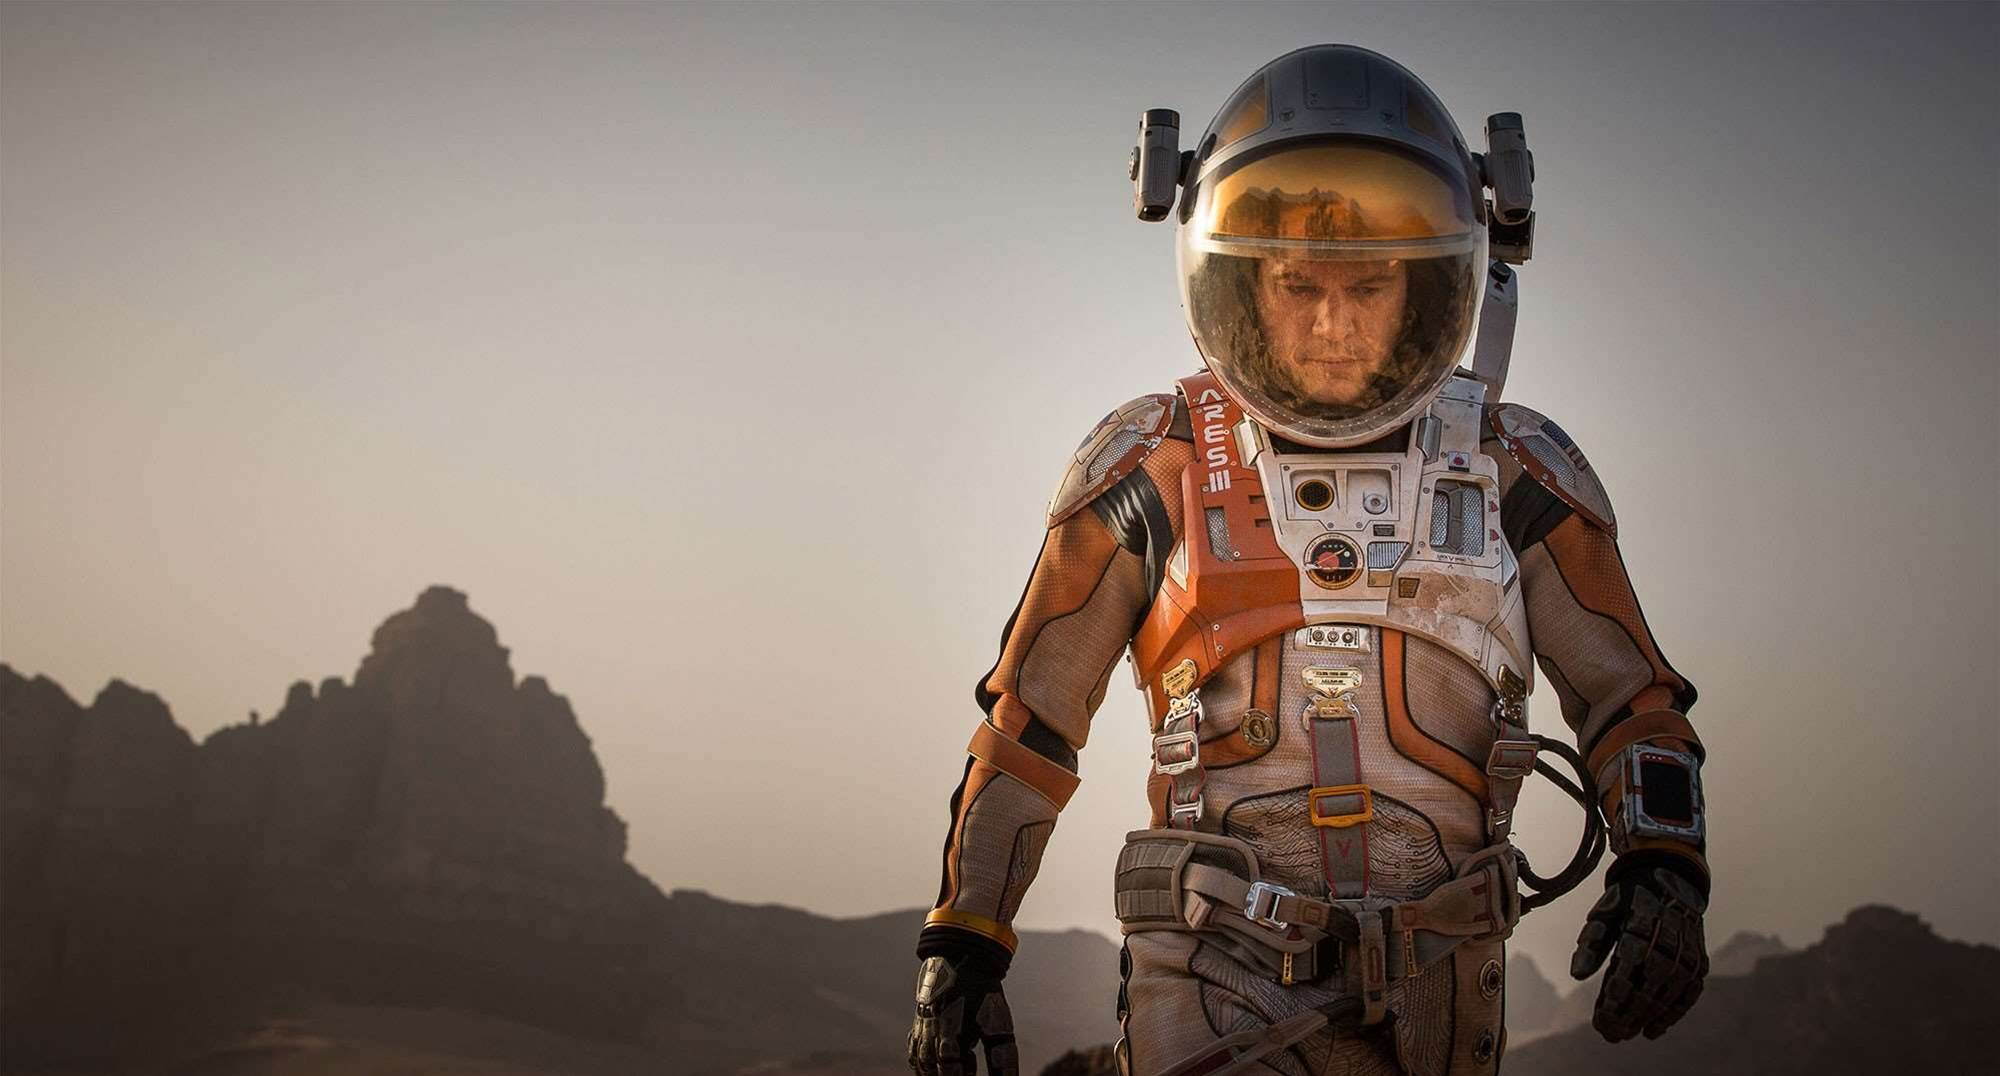 Why NASA Helped Ridley Scott Create 'The Martian' Film